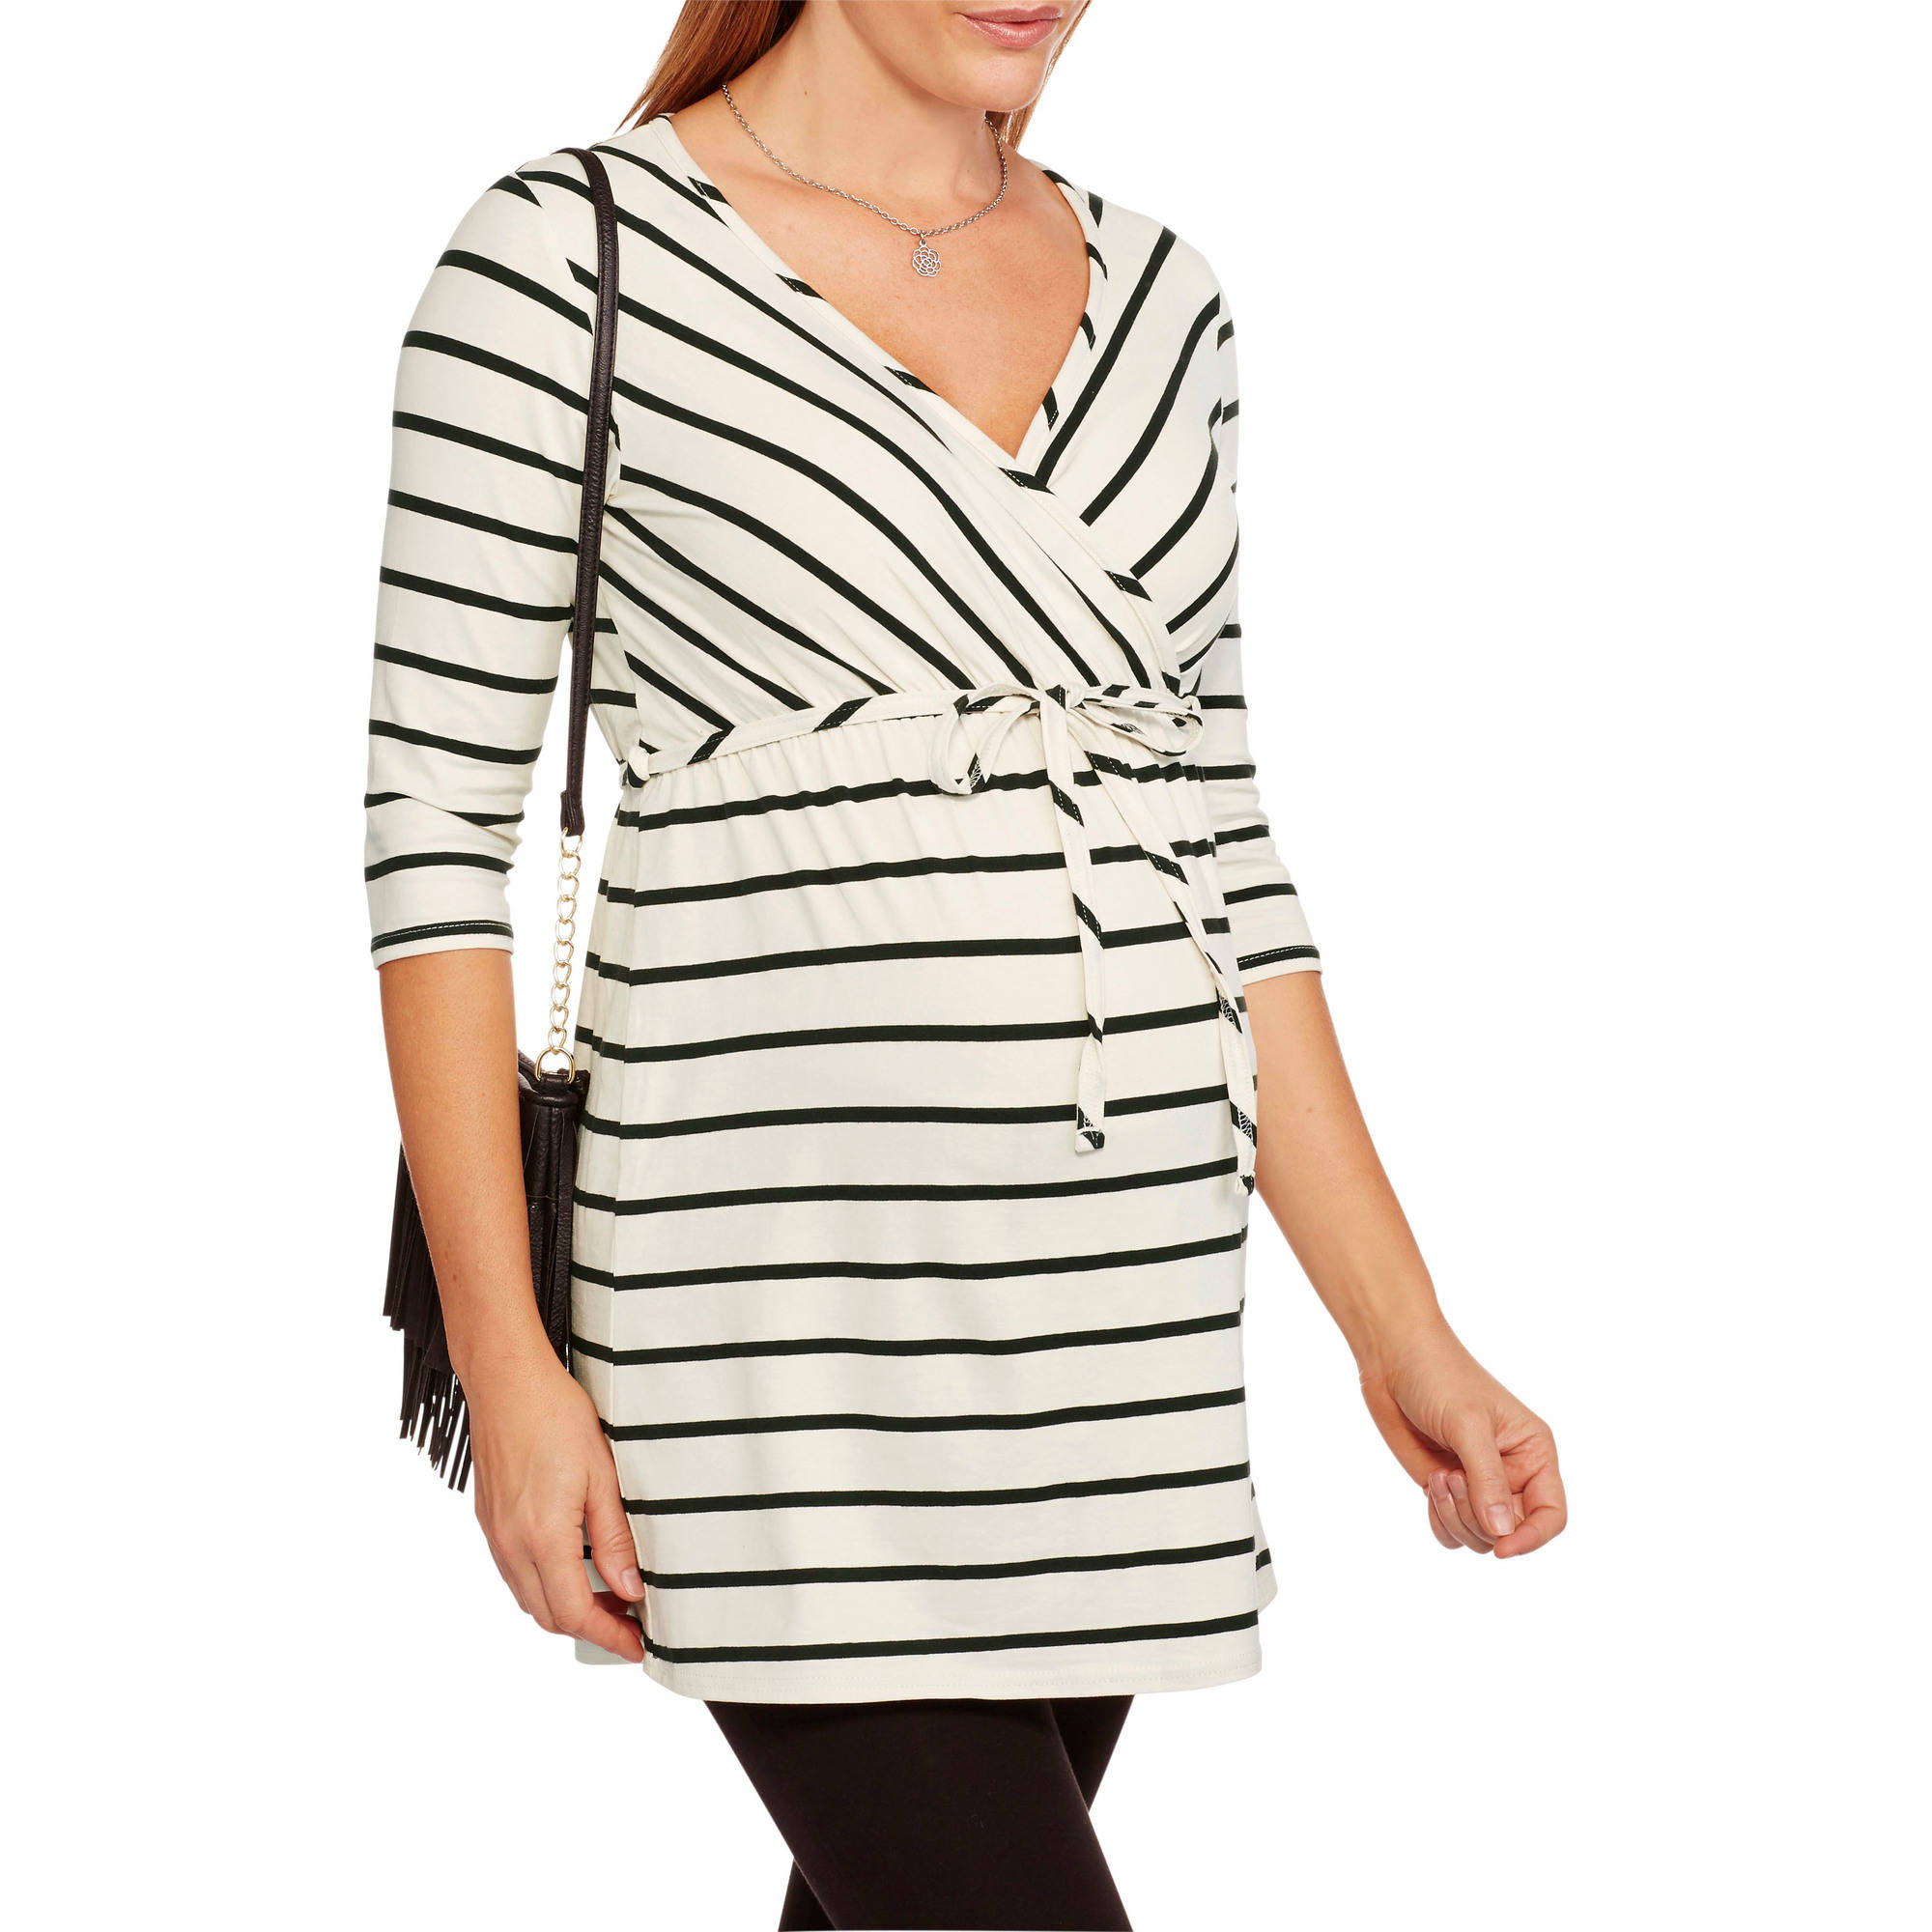 Oh! Mamma Maternity 3/4 Sleeve Surplice Top With Belt--Perfect For Nursing